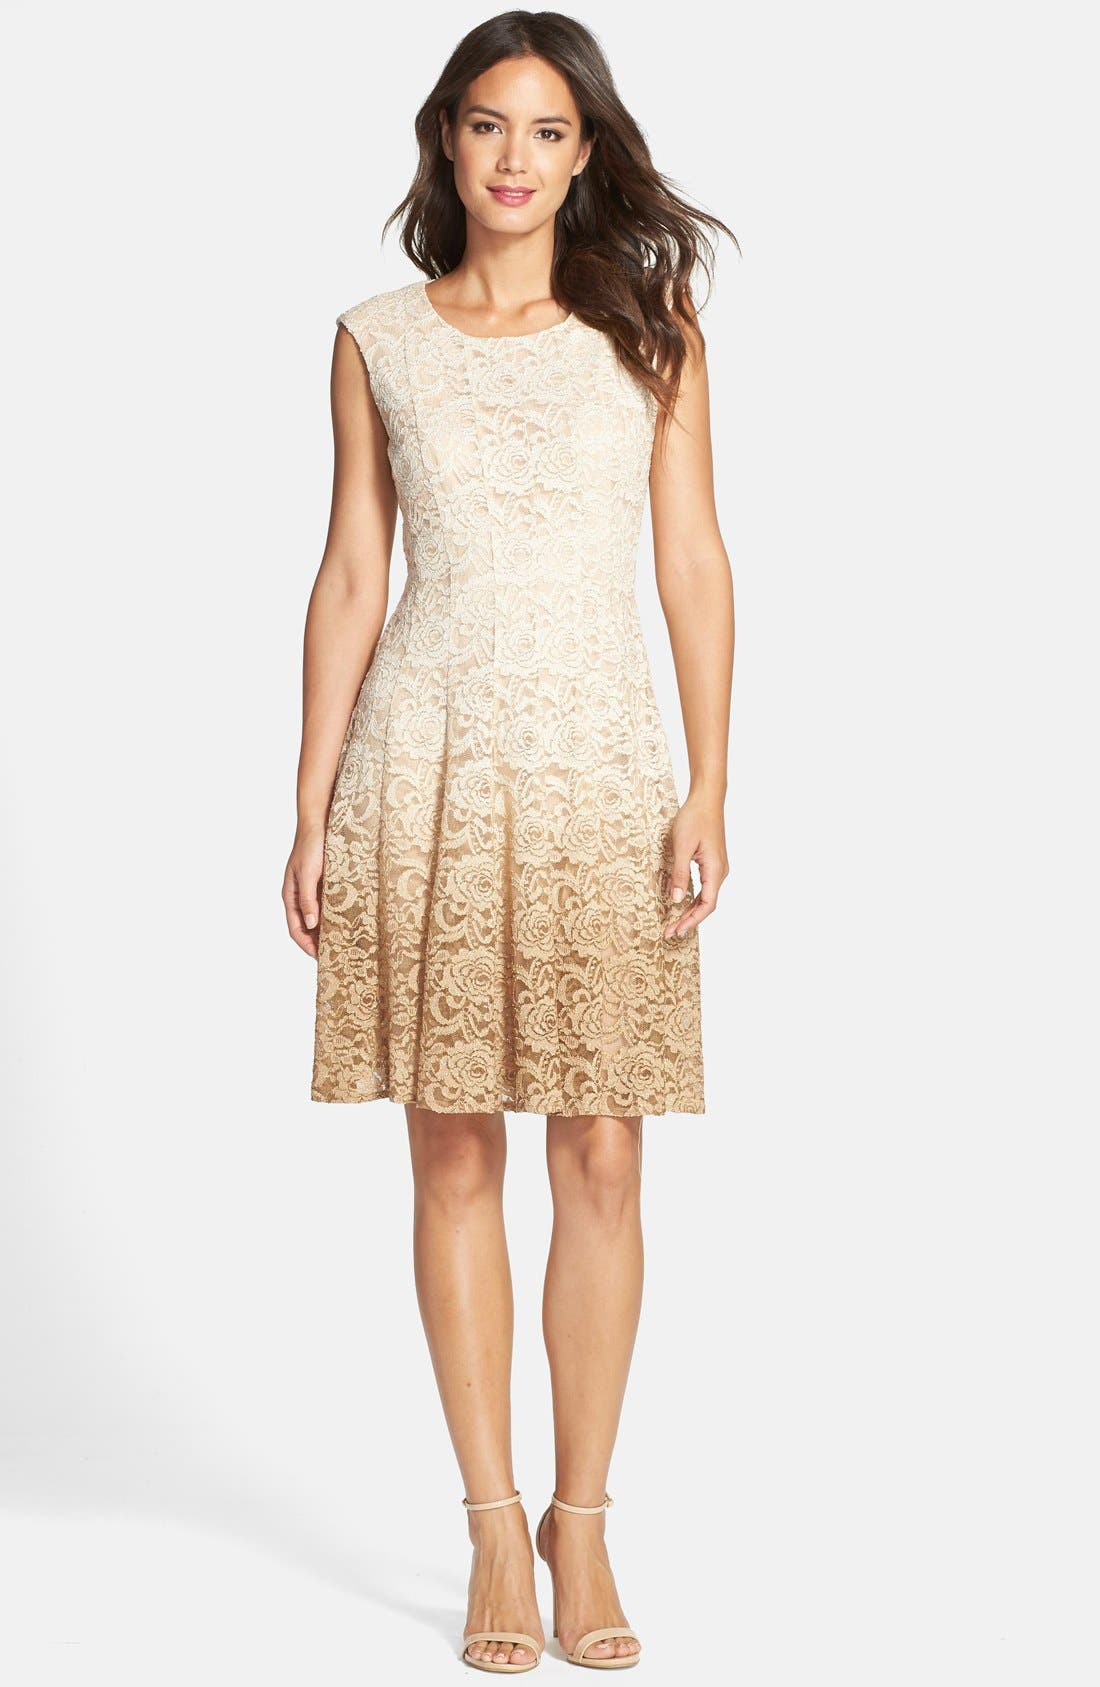 Alternate Image 1 Selected - Chetta B Ombré Lace Fit & Flare Dress